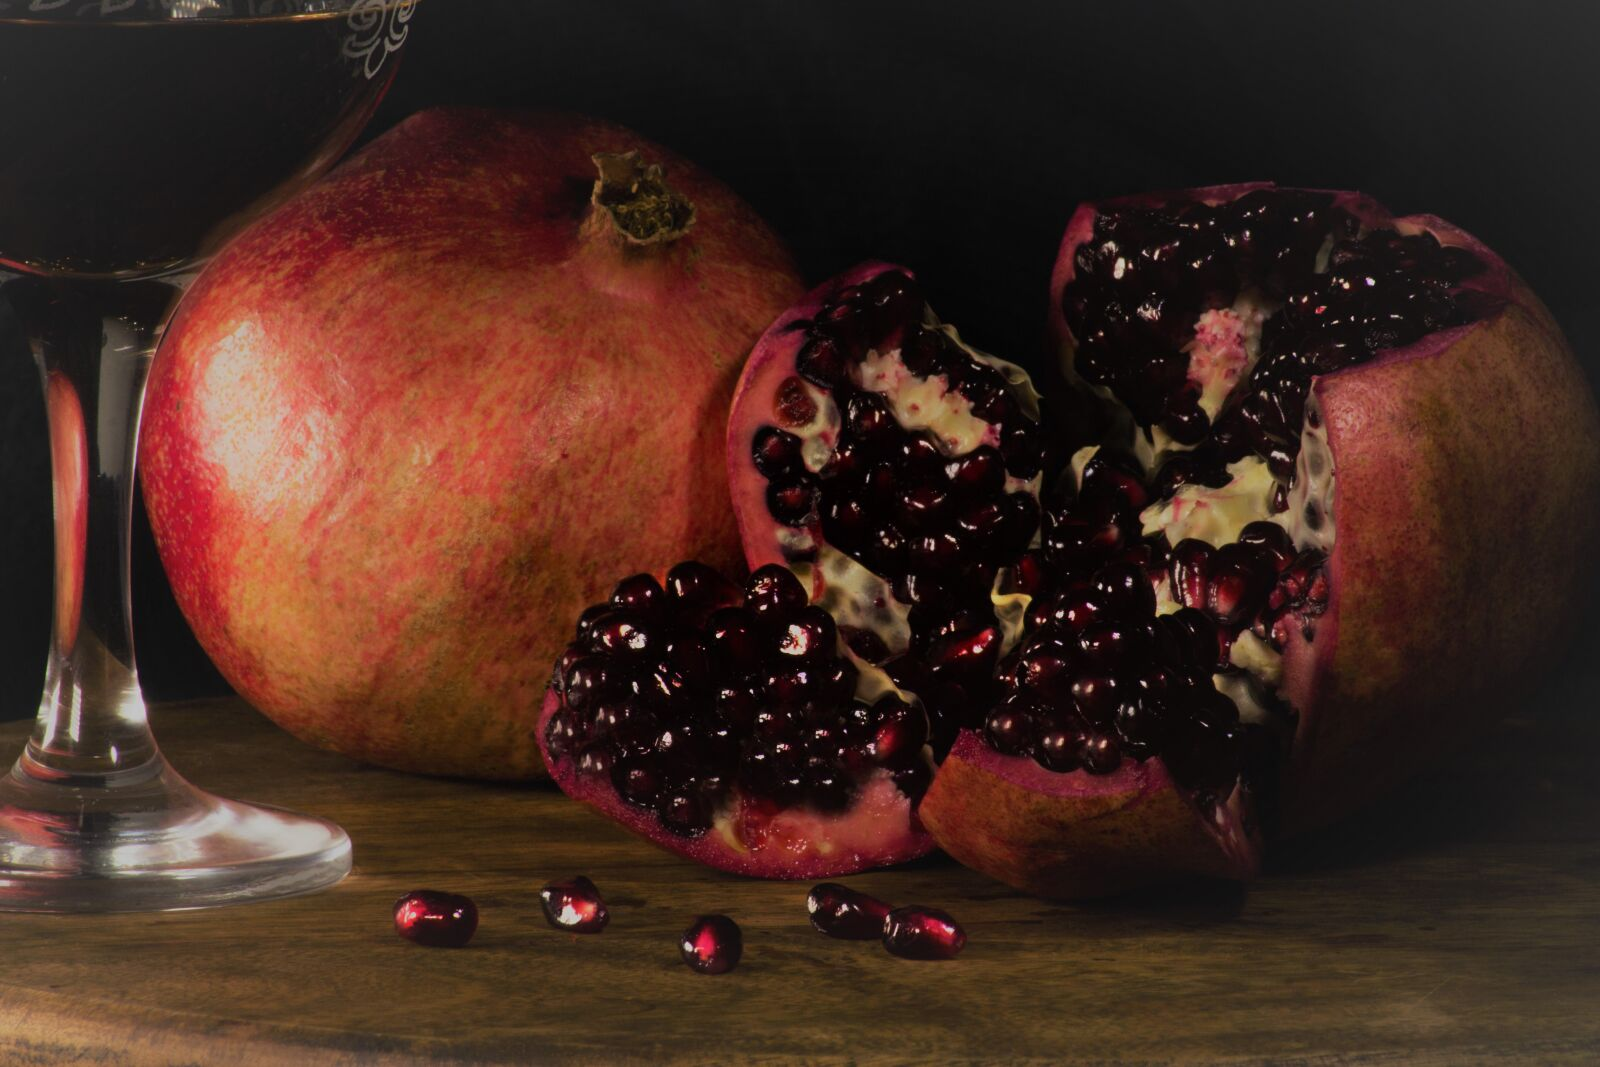 """Canon EOS 60D sample photo. """"Fruit, pomegranate, red"""" photography"""